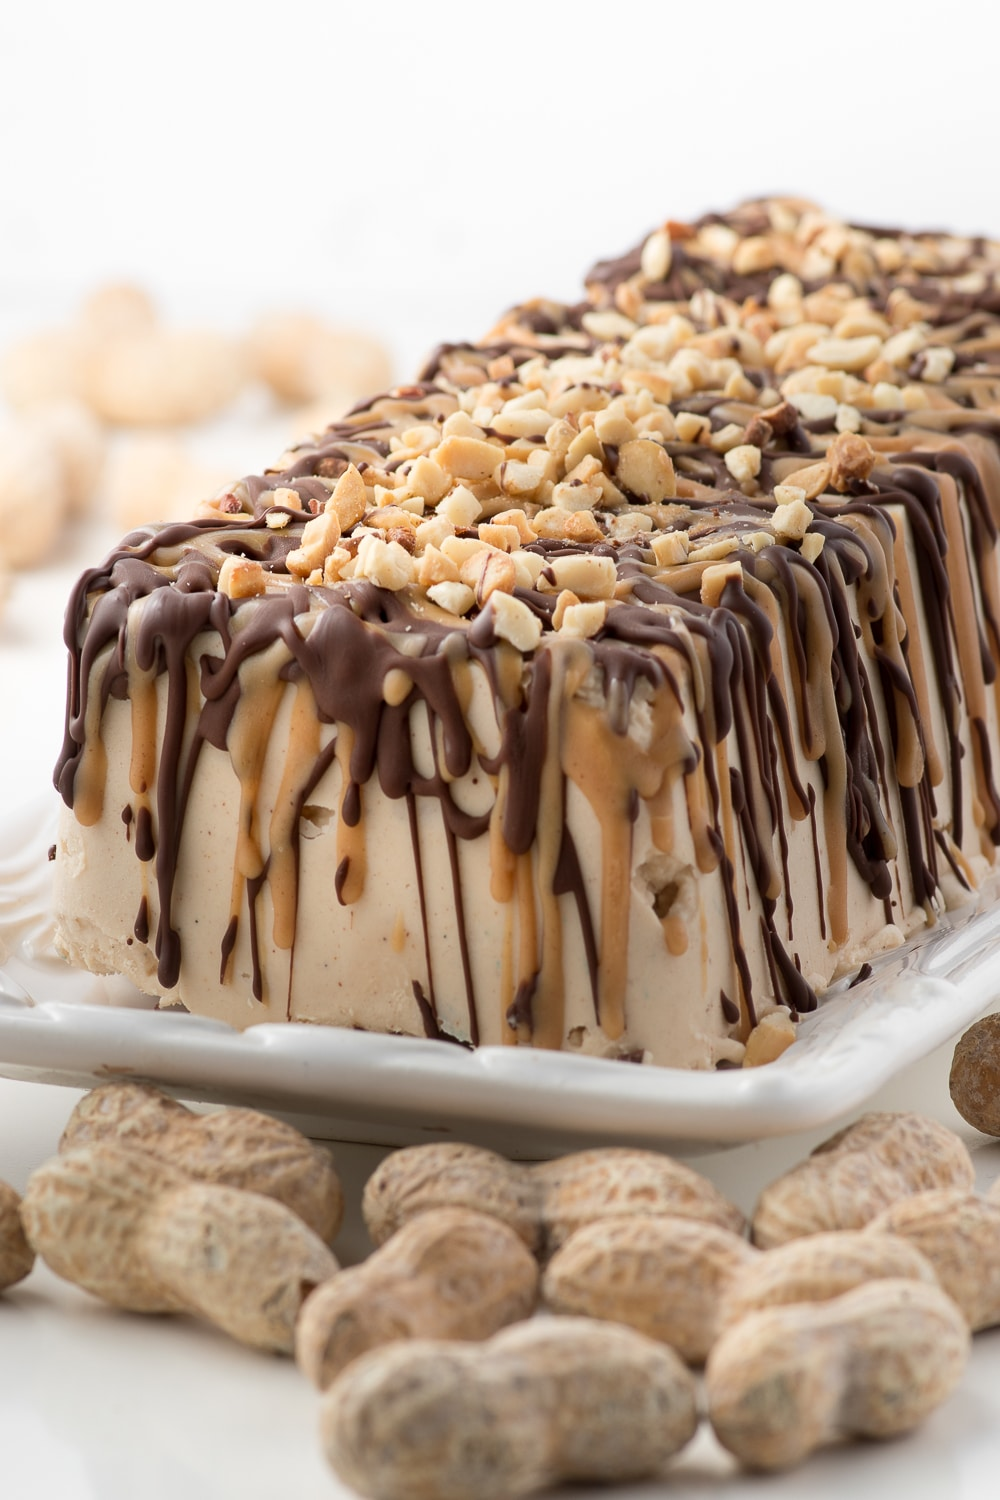 ice cream cake on a plate drizzled with peanut butter and chocolate topped with chopped peanuts